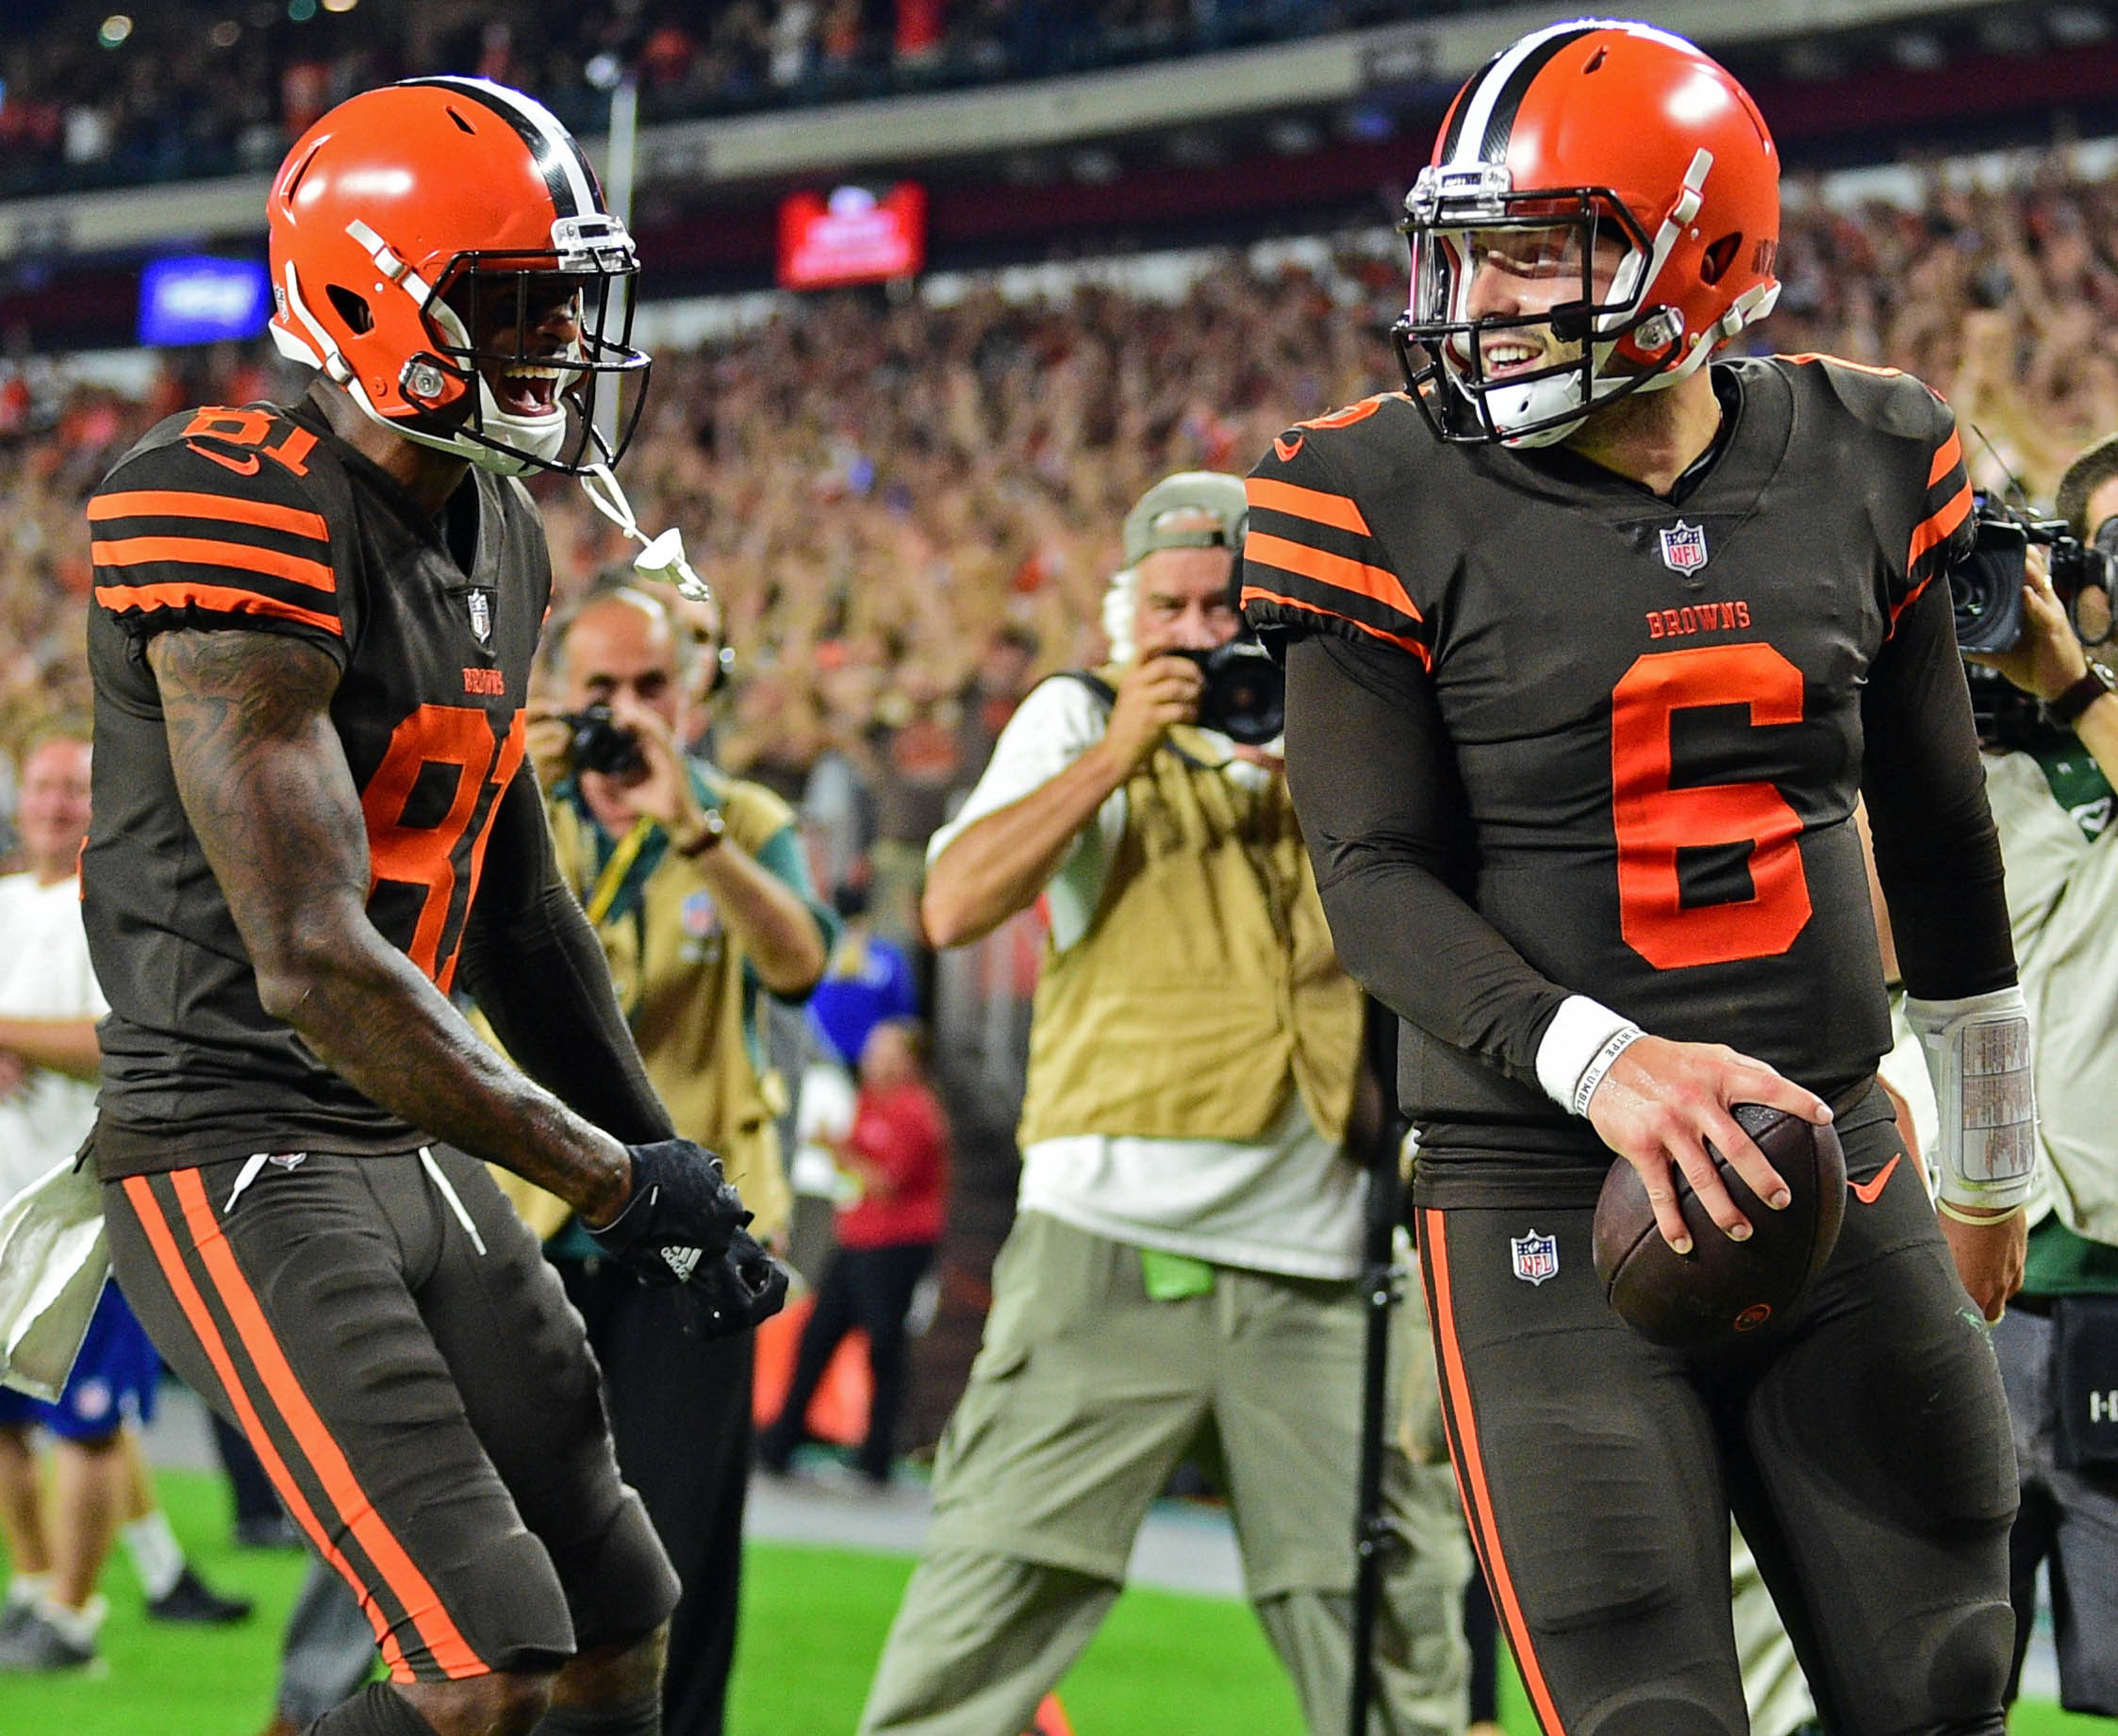 The NFL schedule makers gave us what we want in 2019: the Browns